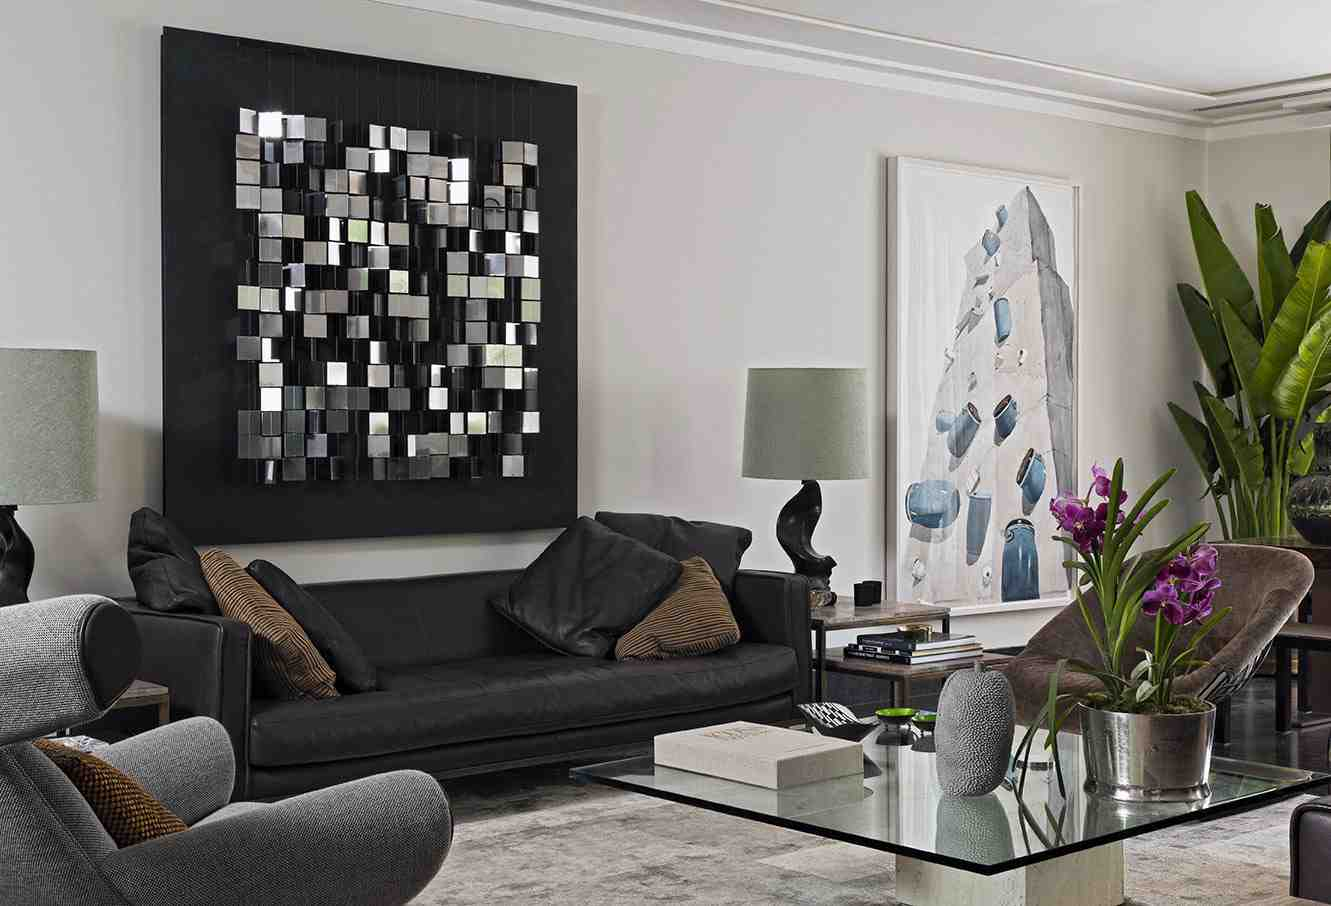 Living Room Paintings Living Room Wall Decor 5 Options Decor Ideasdecor Ideas